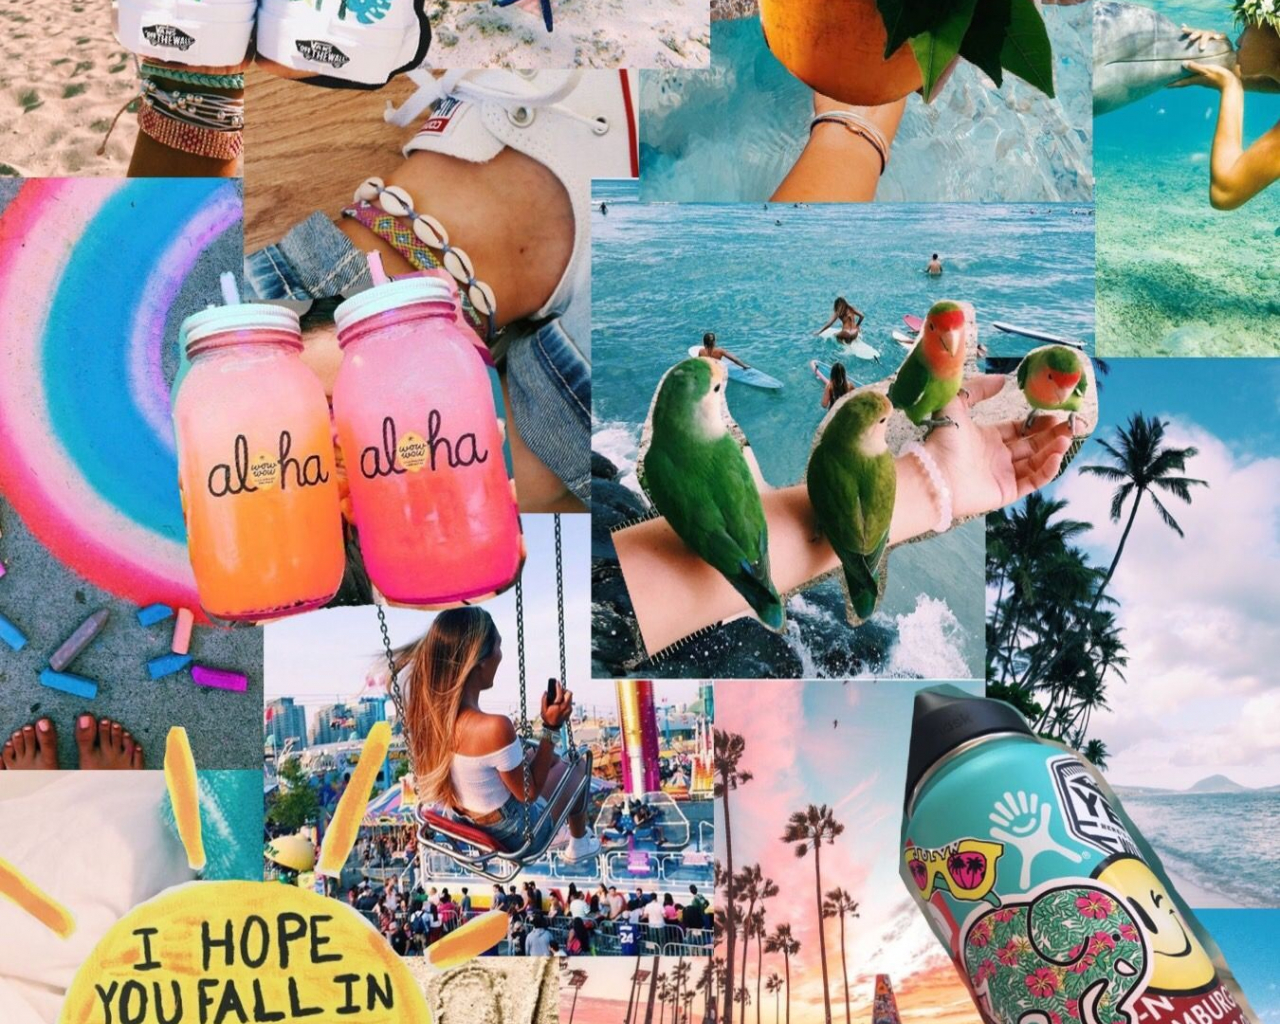 Free Download Summer Collage Wallpapers Top Summer Collage Backgrounds 1350x1800 For Your Desktop Mobile Tablet Explore 52 Collage For Summer Wallpapers Collage For Summer Wallpapers Collage Backgrounds Photo Collage